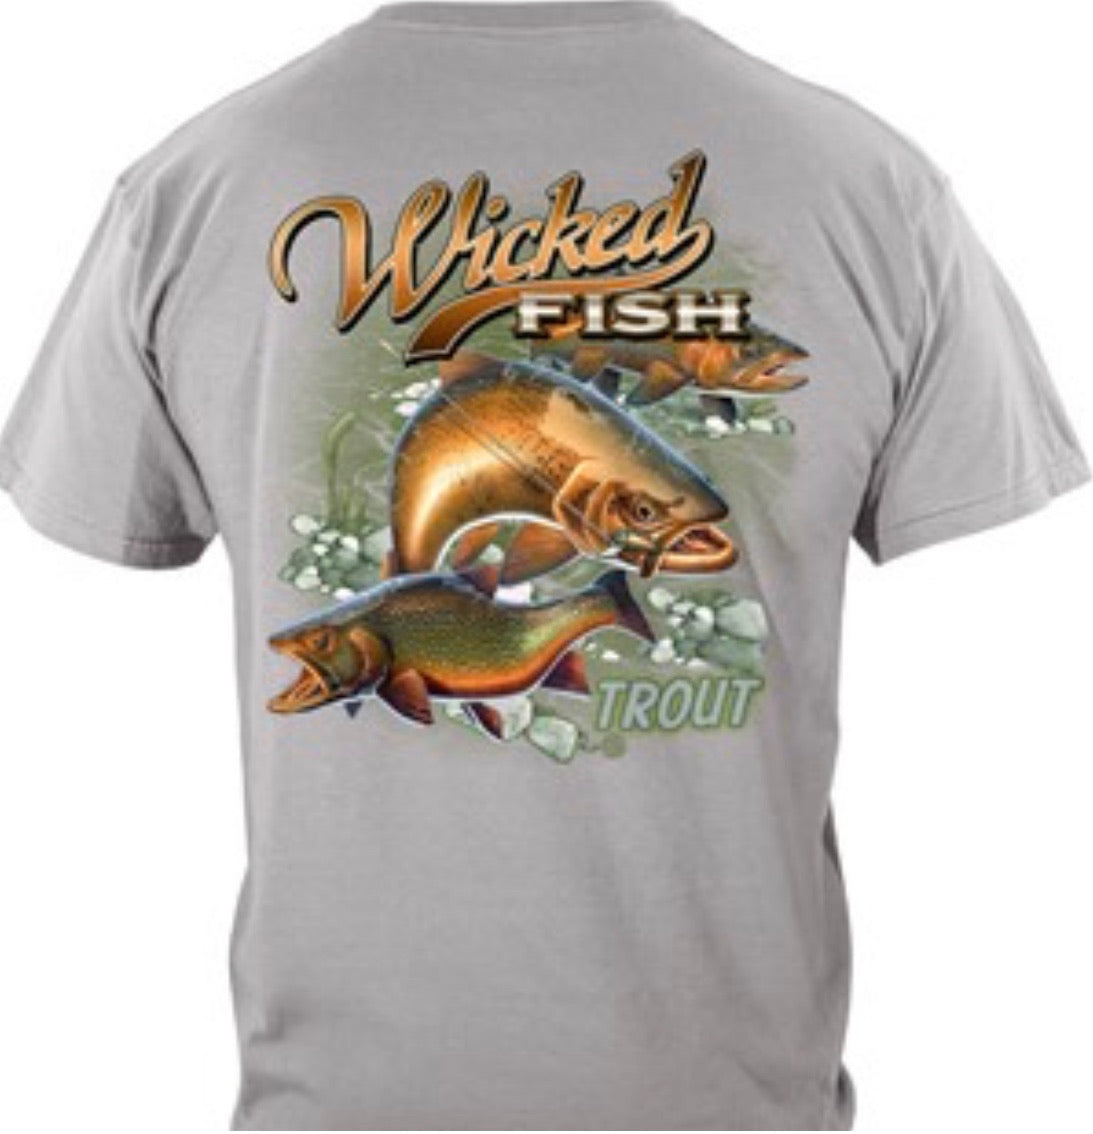 WICKED FISH TROUT - The Wall Kids, Inc.